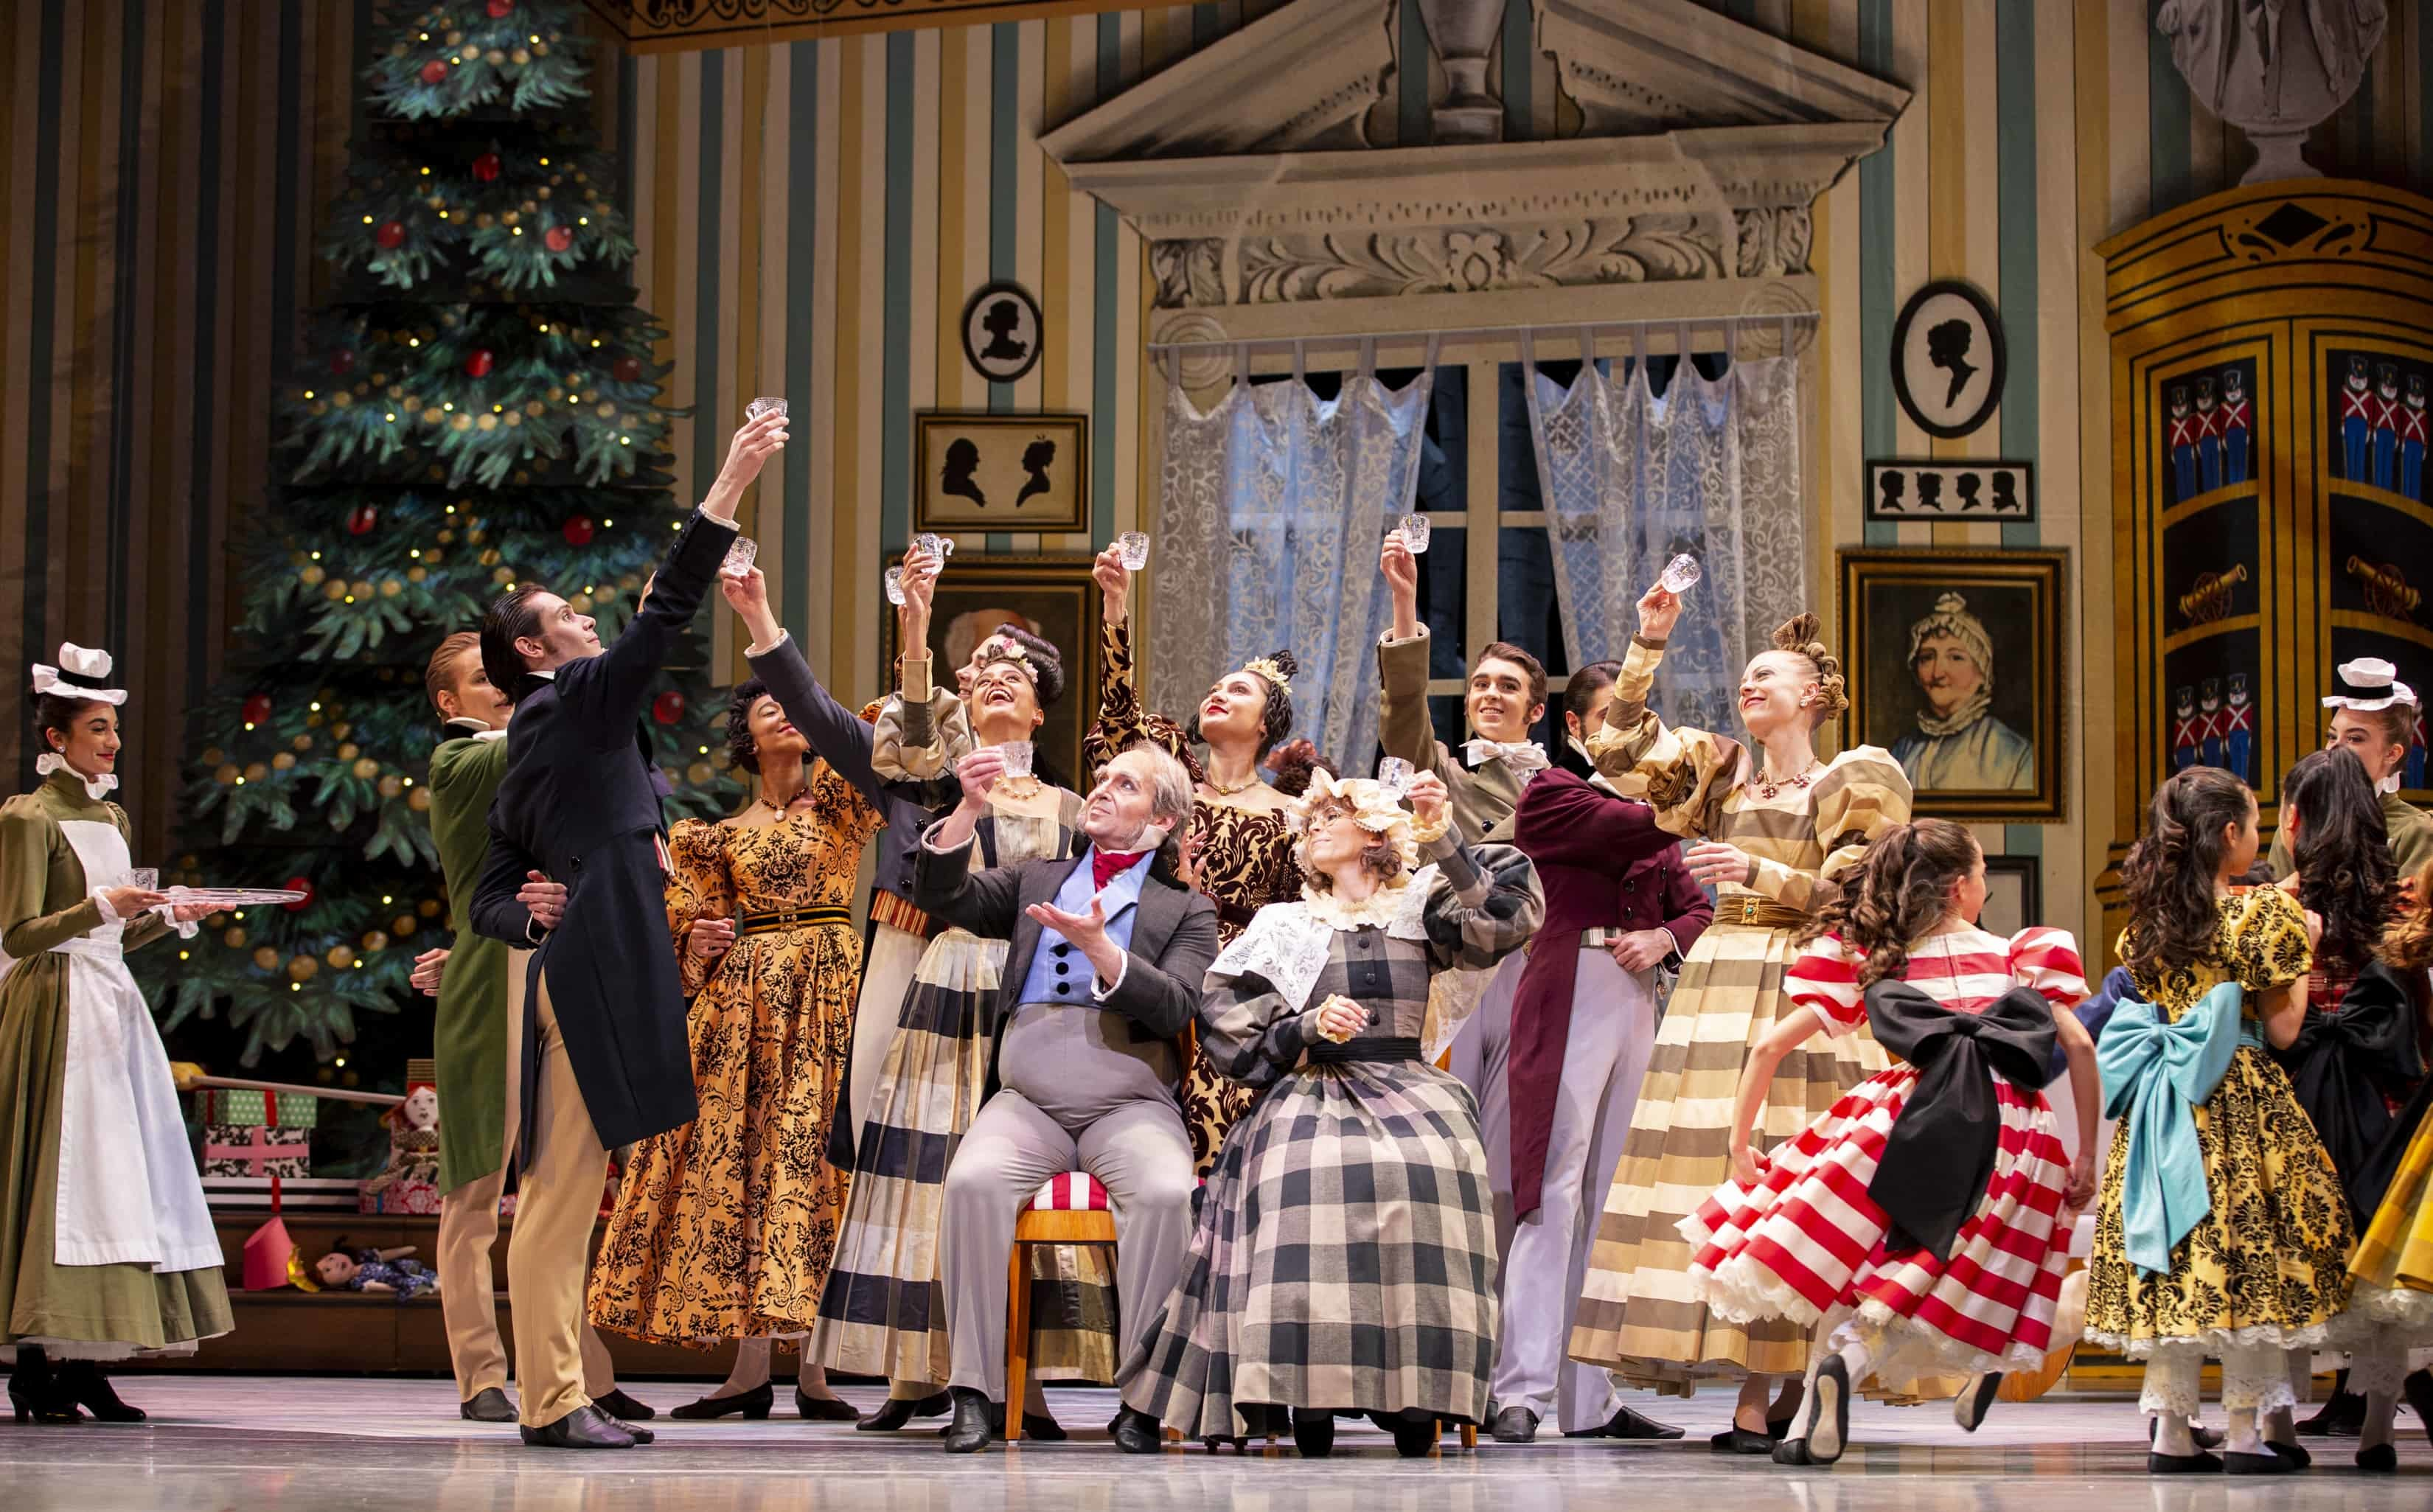 Party scene. George Balanchine's The Nutcracker®, choreography by George Balanchine © The George Balanchine Trust. Photo © Angela Sterling.